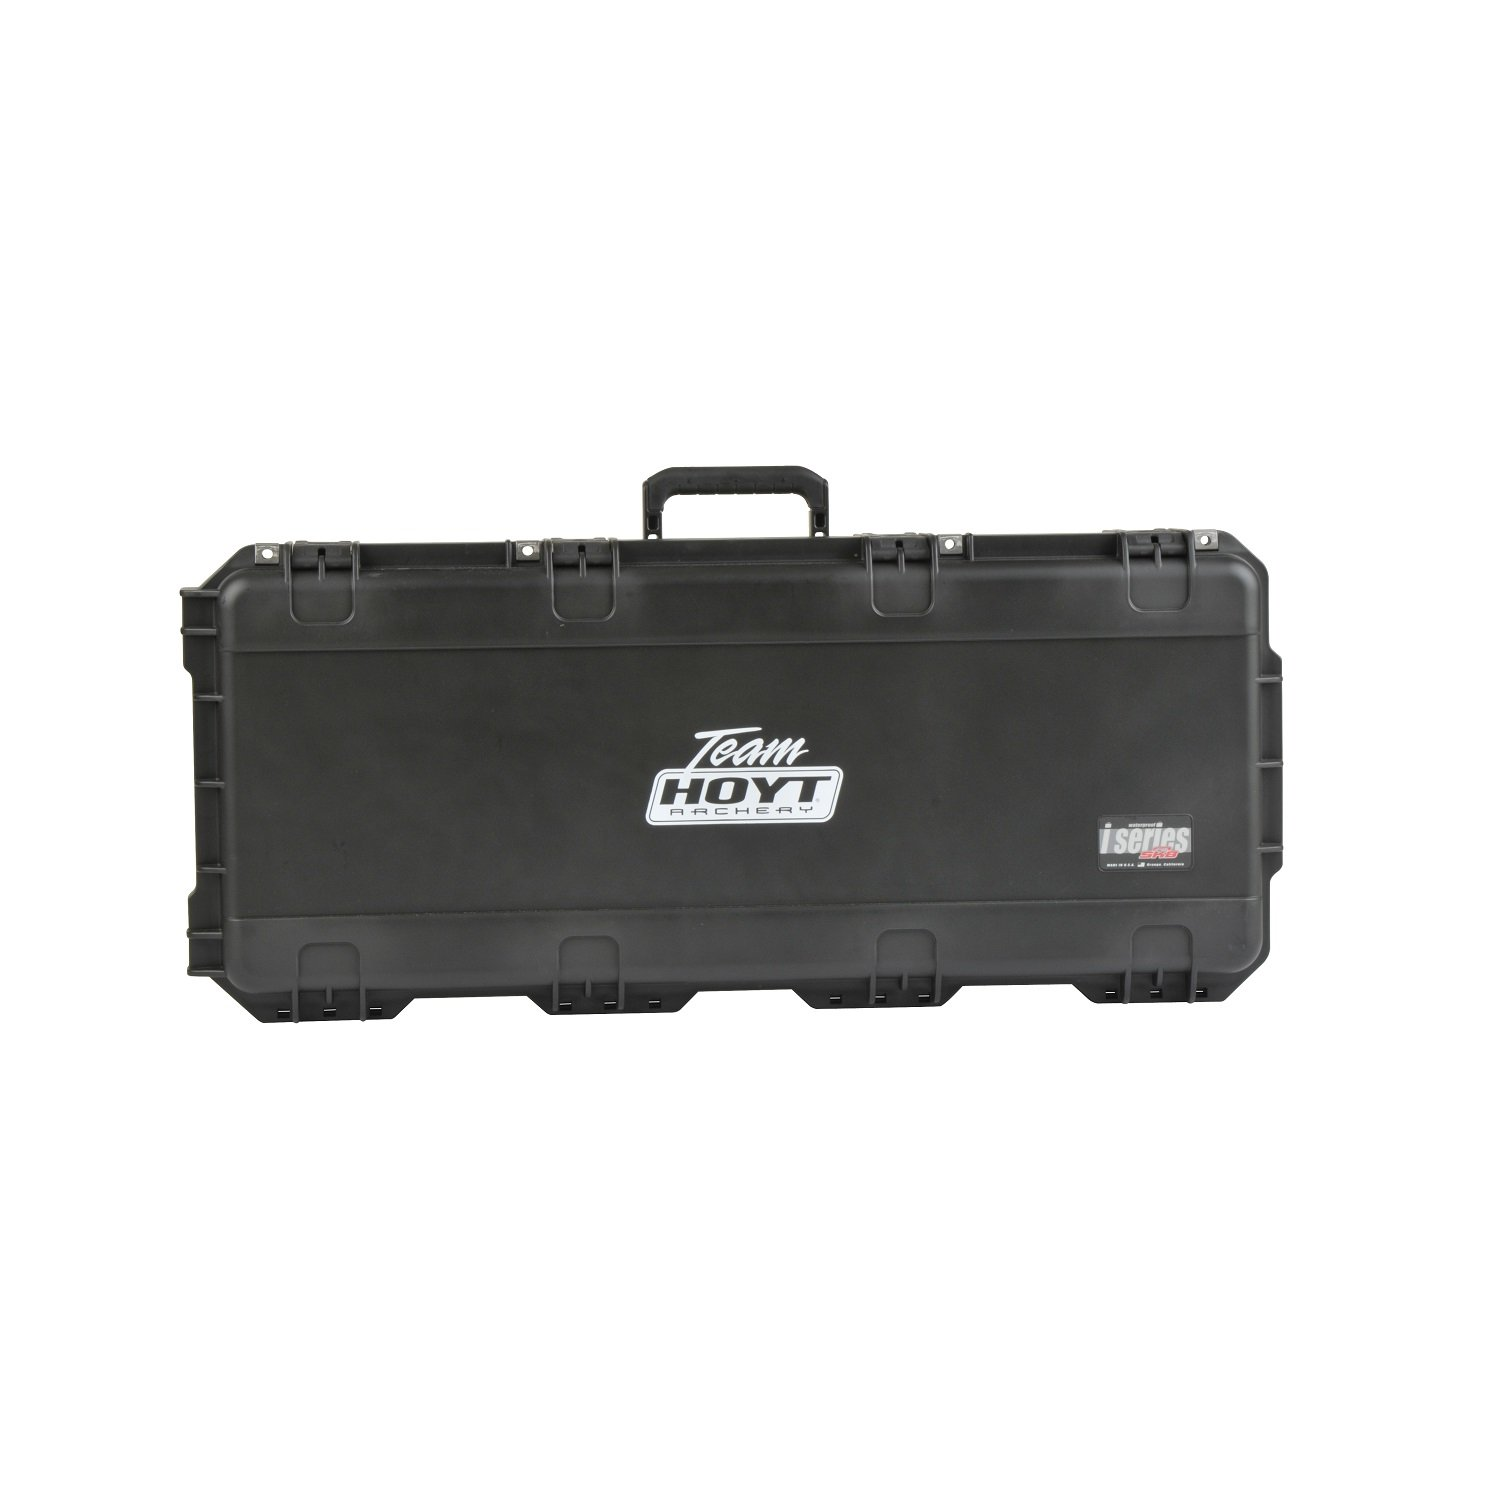 Image of Bow Cases SKB Sports I Series Hoyt Bow Case